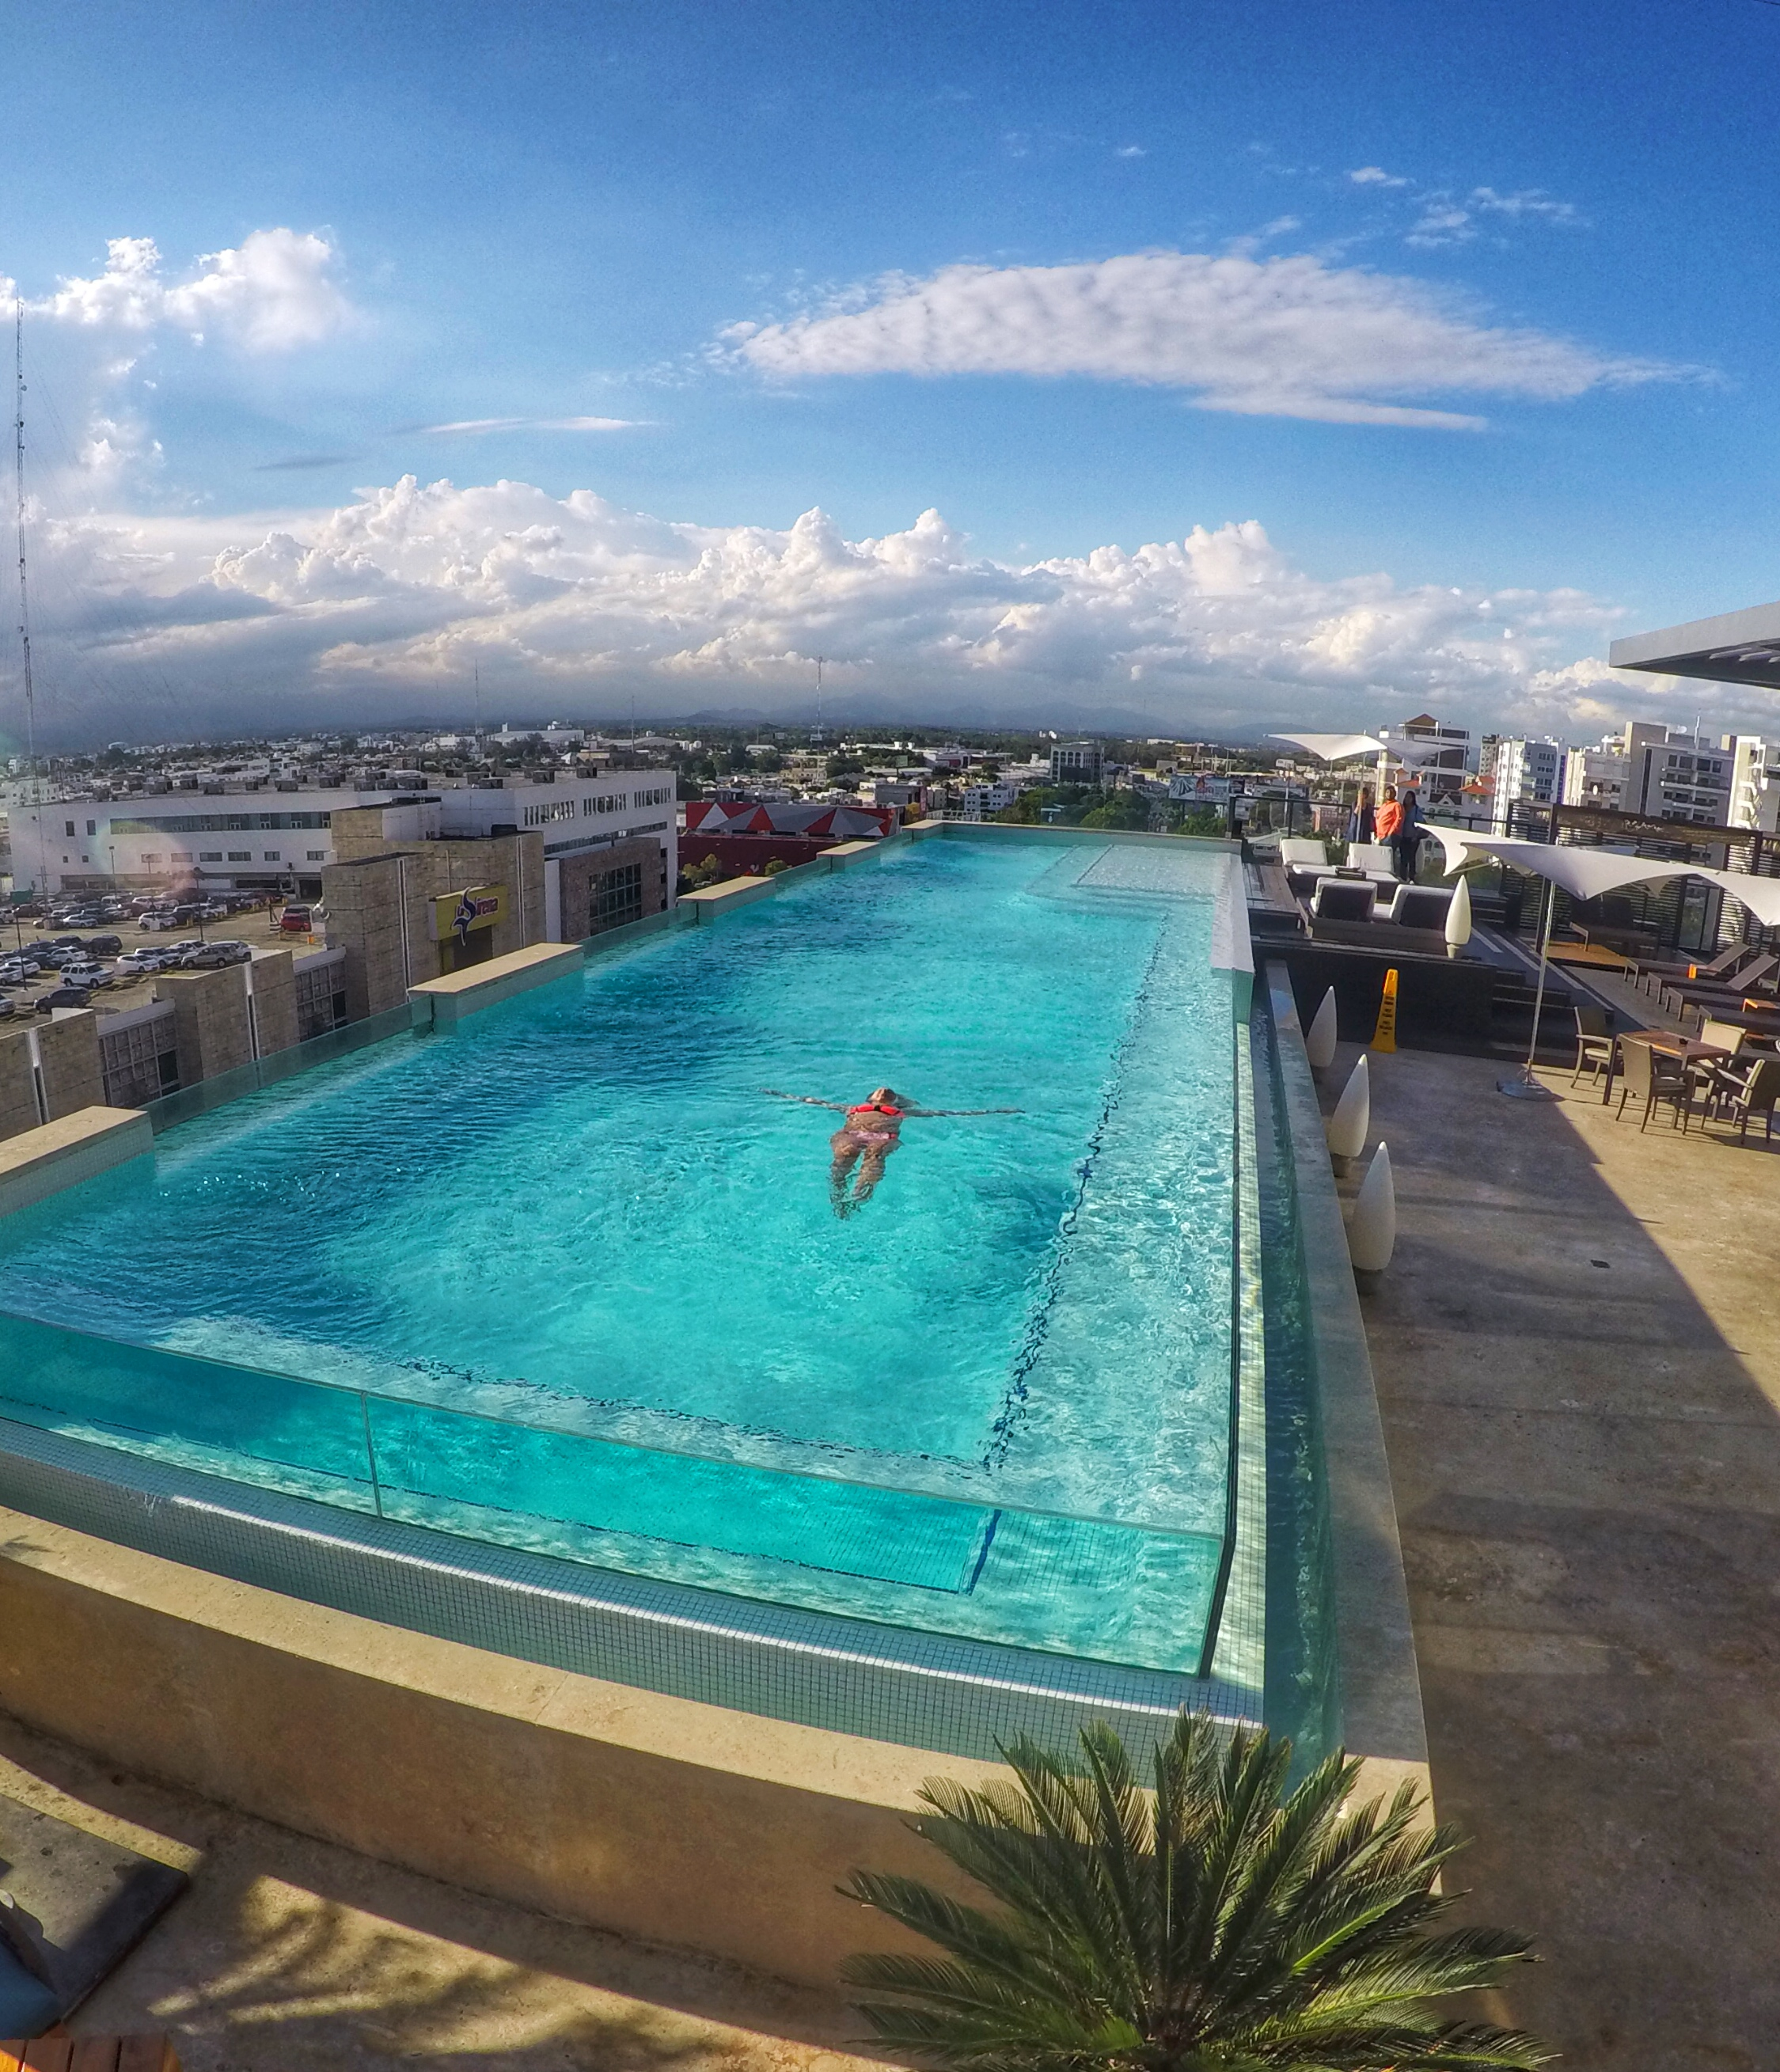 JW MARRIOTT SANTO DOMINGO piscina de vidro glass pool republica dominicana